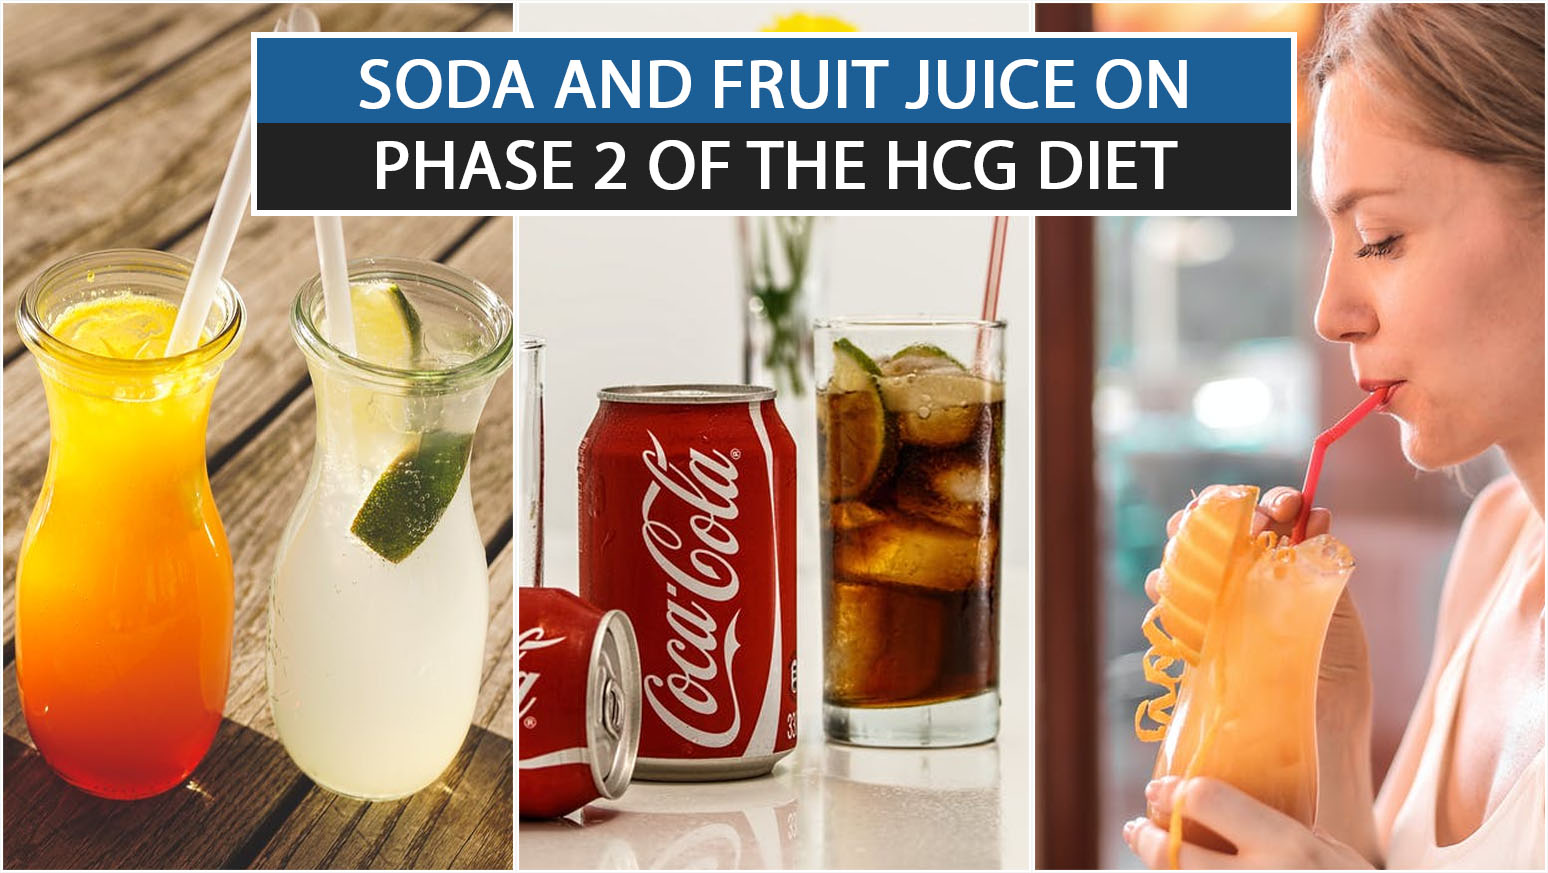 SODA AND FRUIT JUICE ON PHASE 2 OF THE HCG DIET